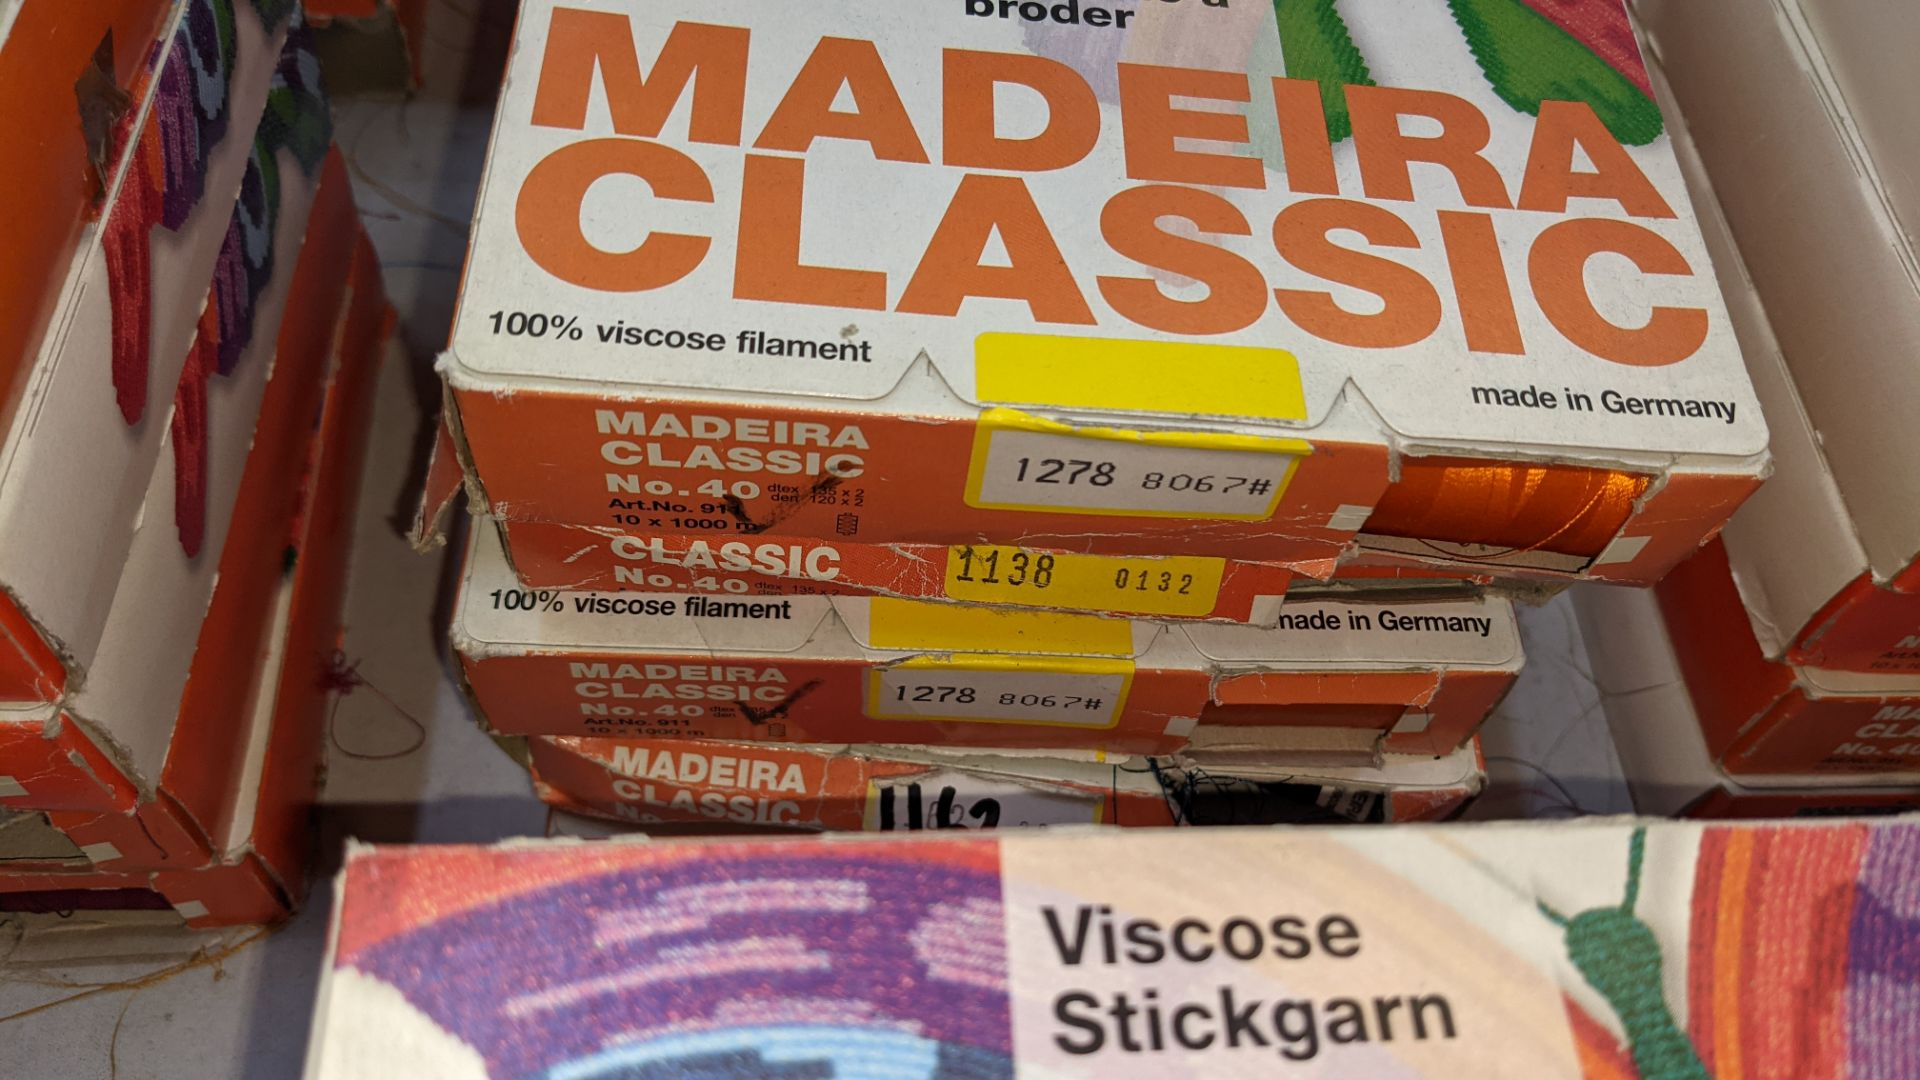 25 boxes of Madeira Classic No. 40 rayon embroidery thread - Image 5 of 12